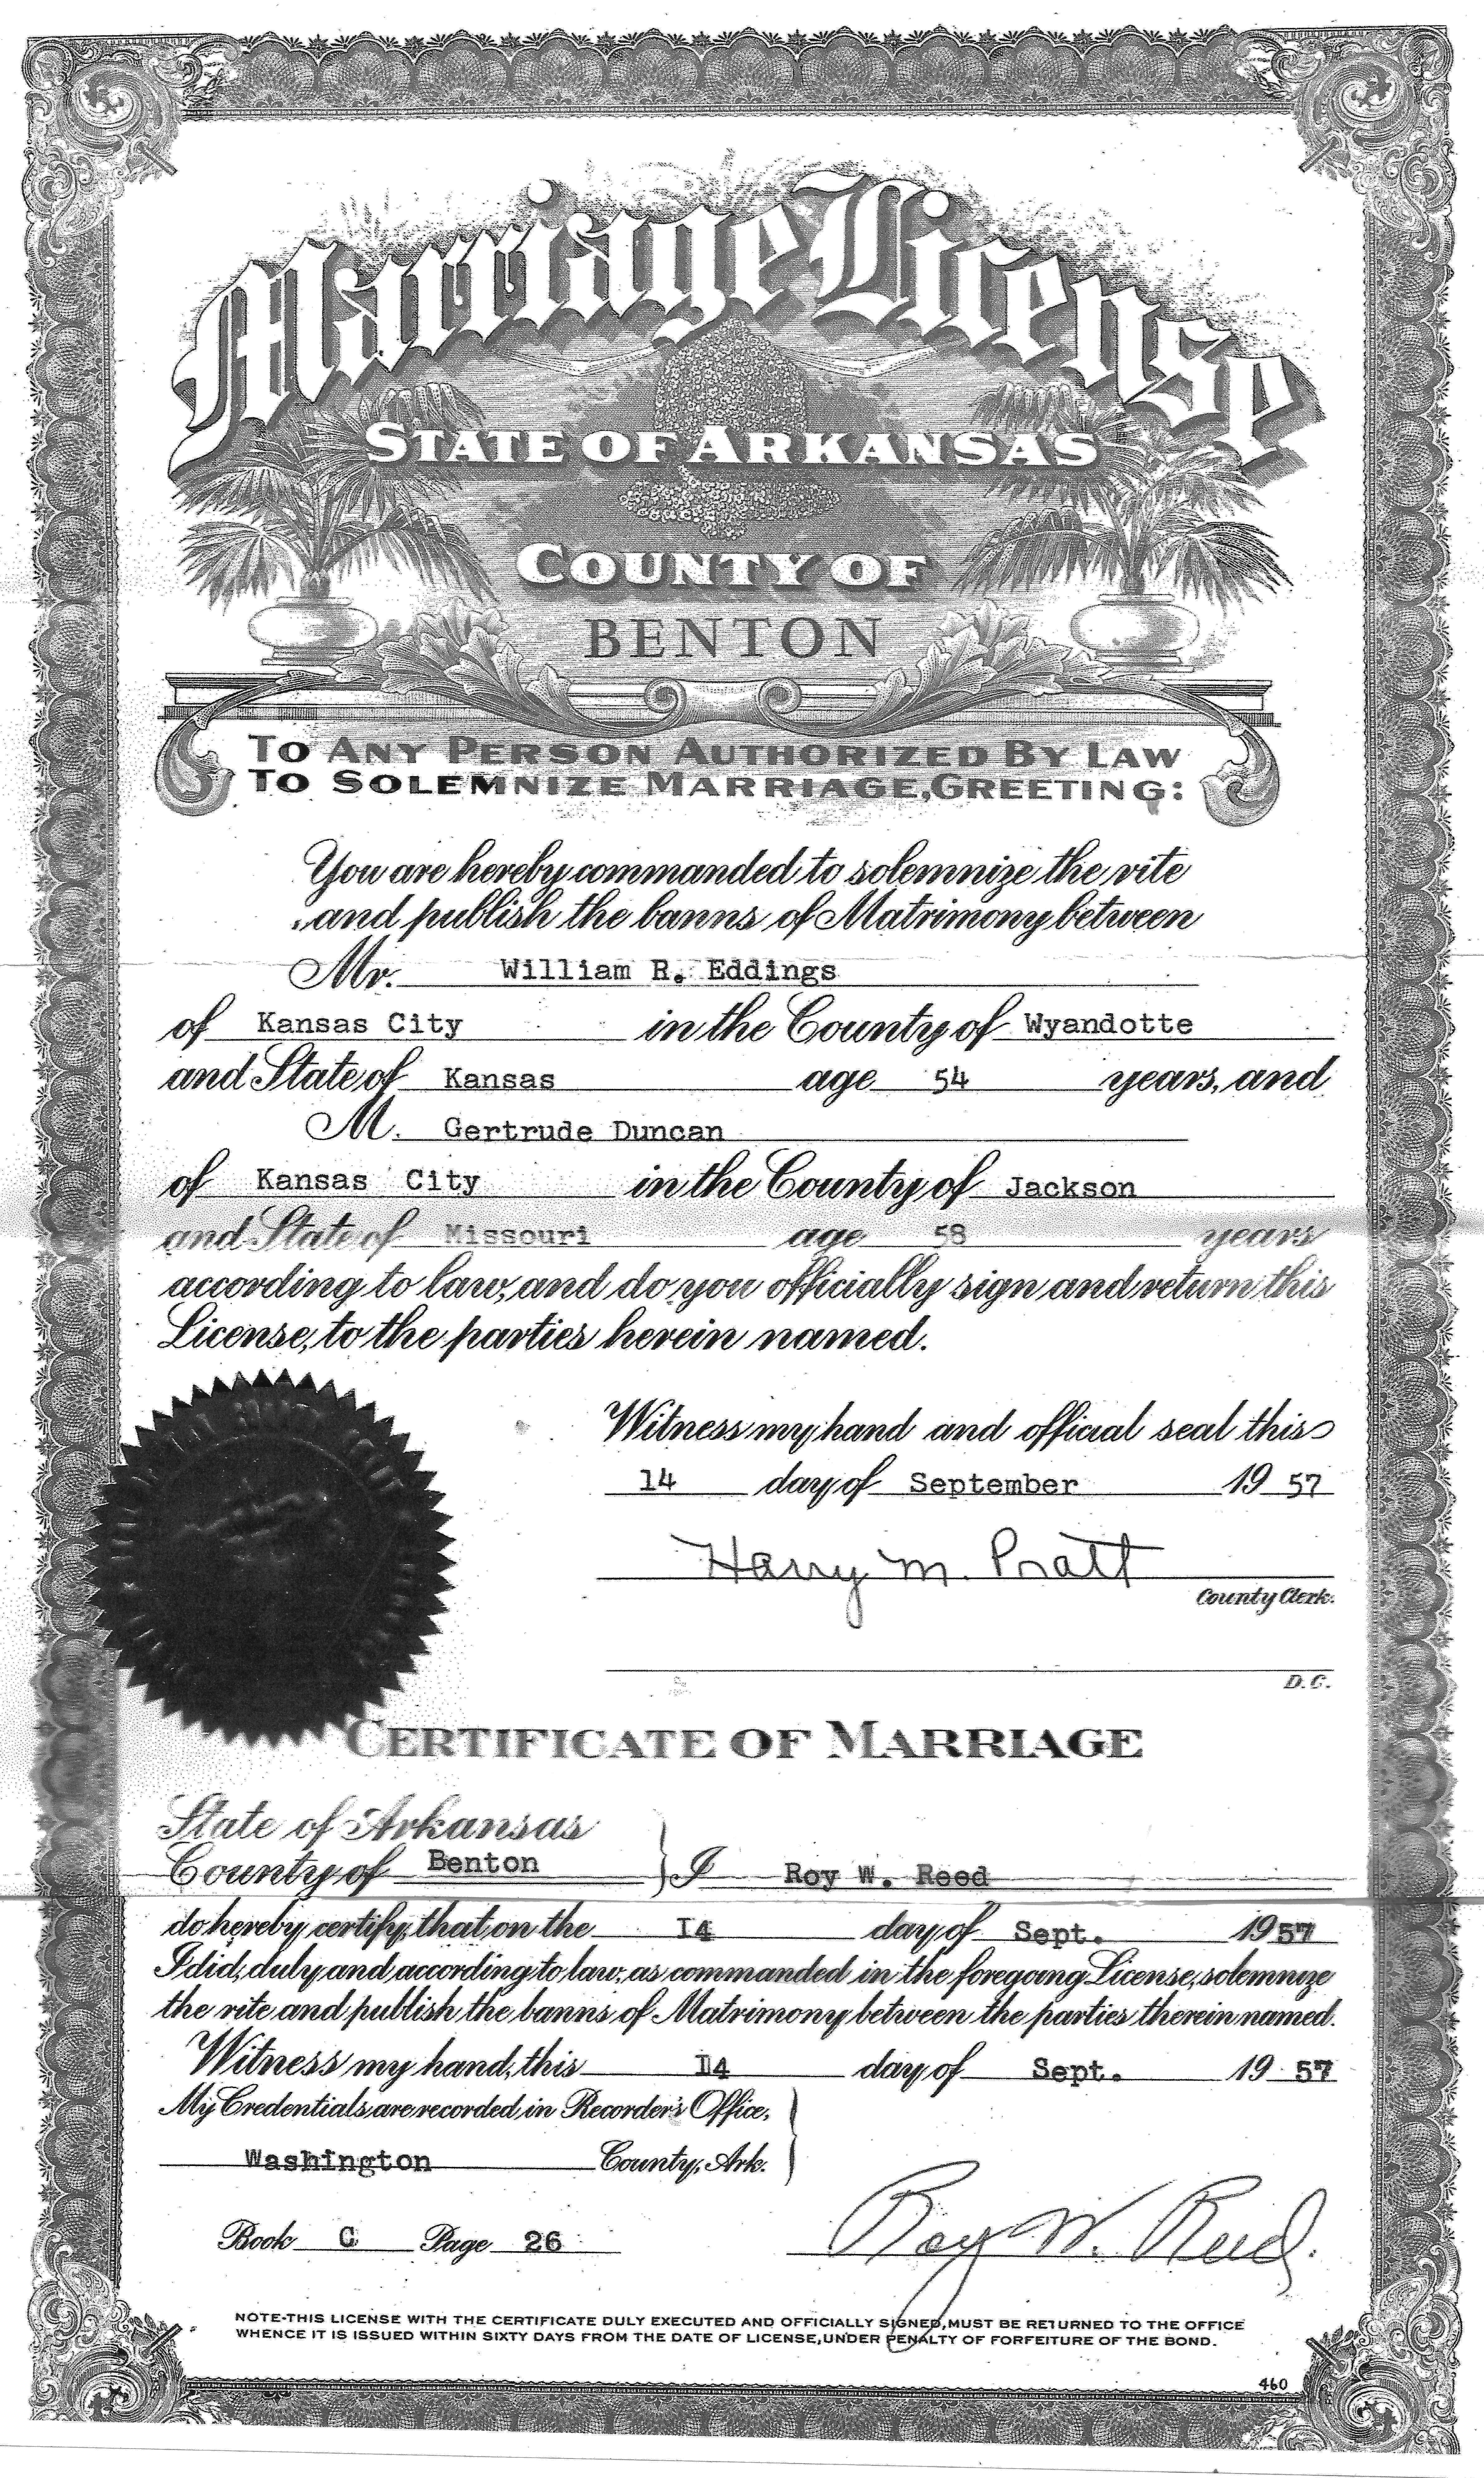 Washington County Marriage & Divorce Records - County Courts